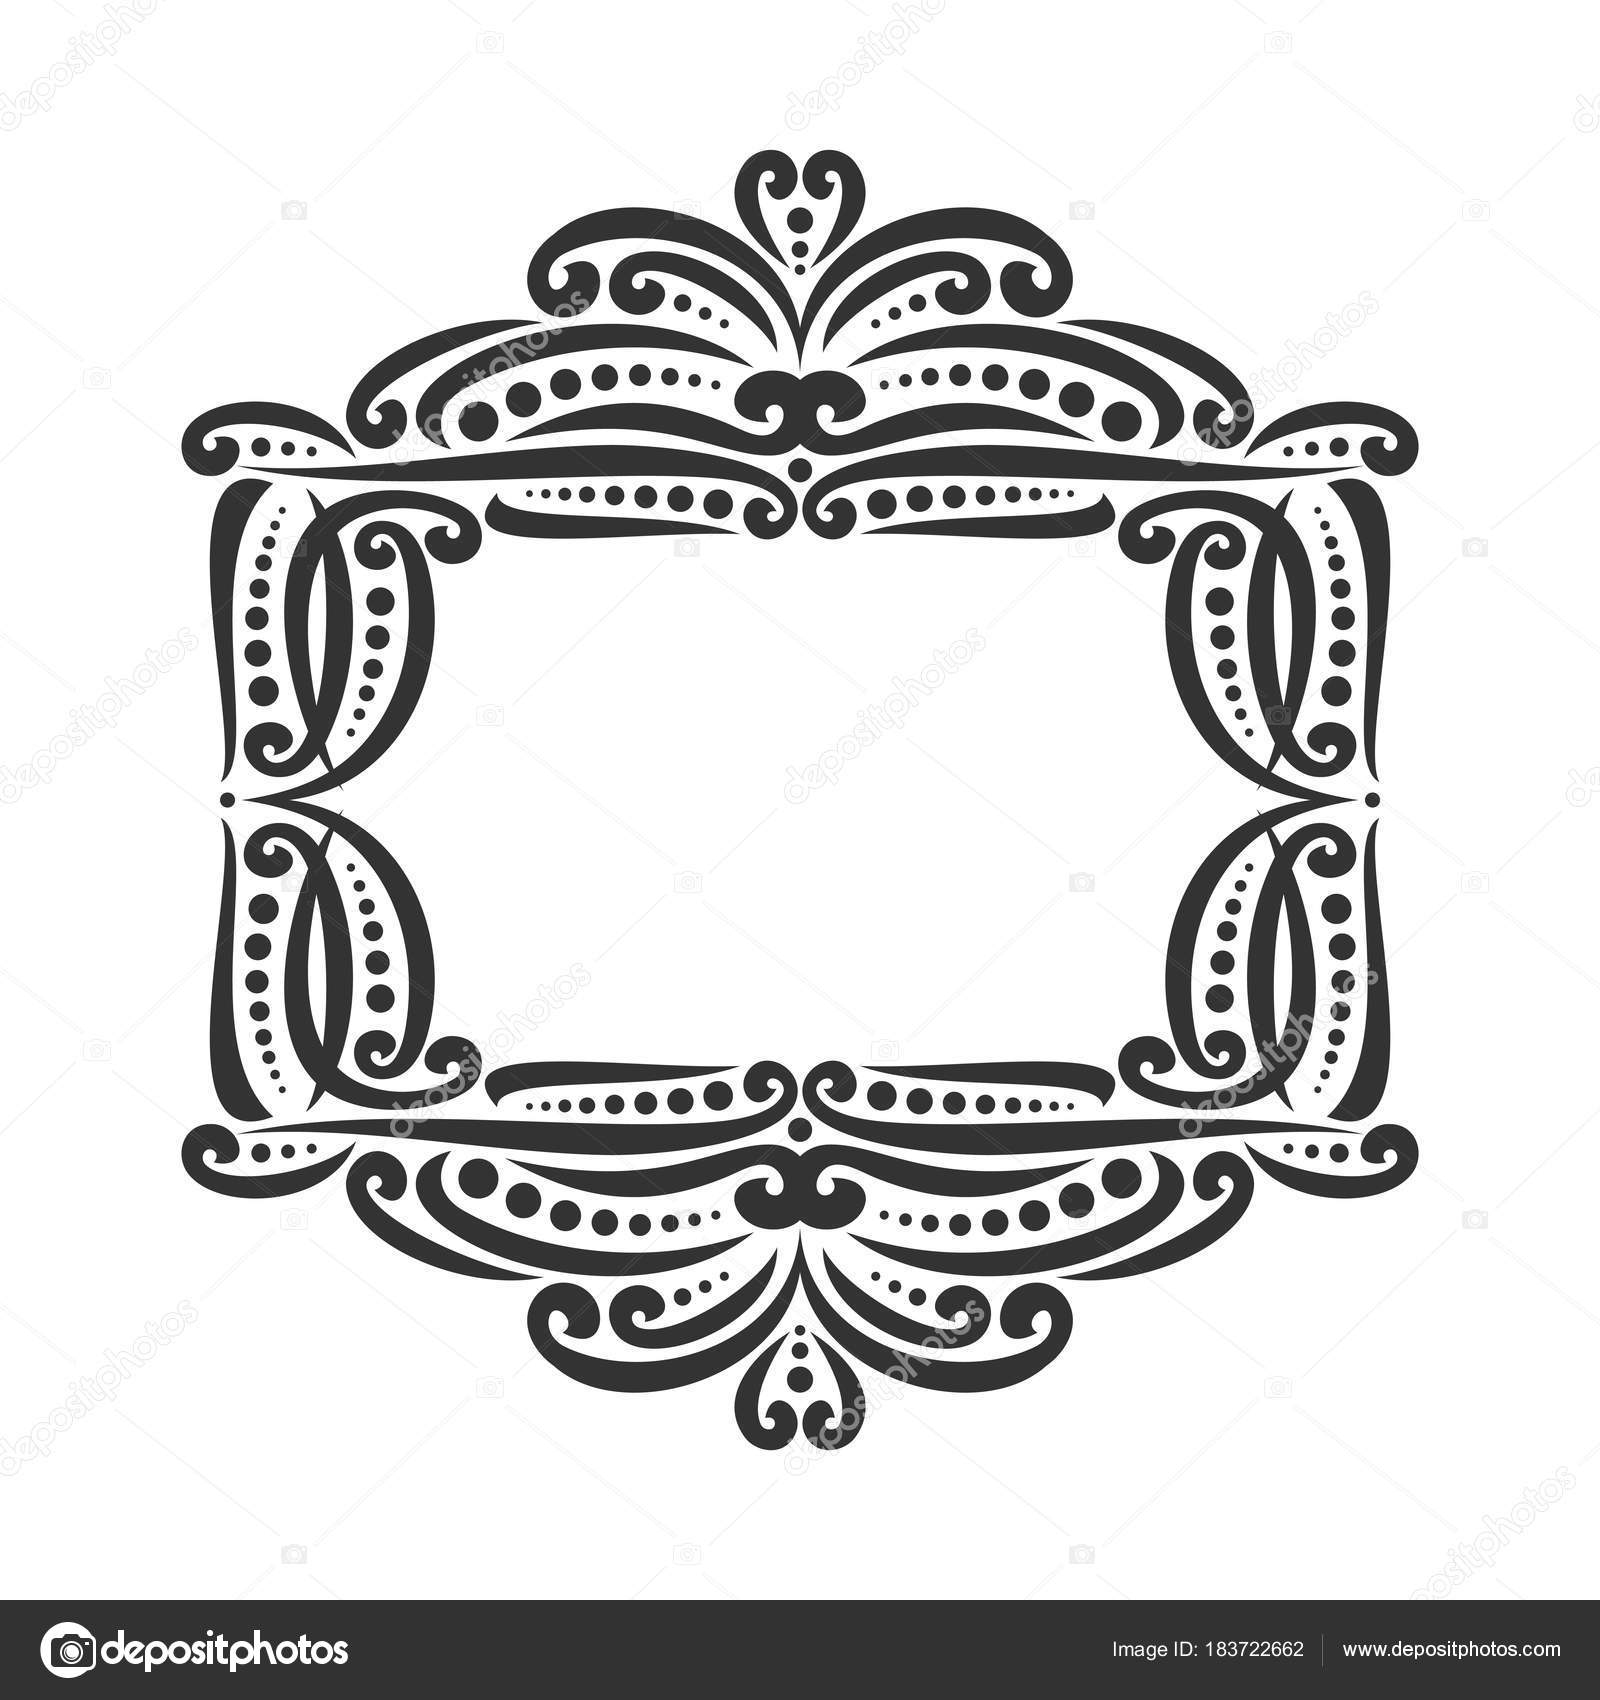 Vector decorative black frame white ornate decoration flourishes decoration with flourishes for wedding invitation vintage filigree border with curls and dots ornament with sophisticated victorian design elements junglespirit Images